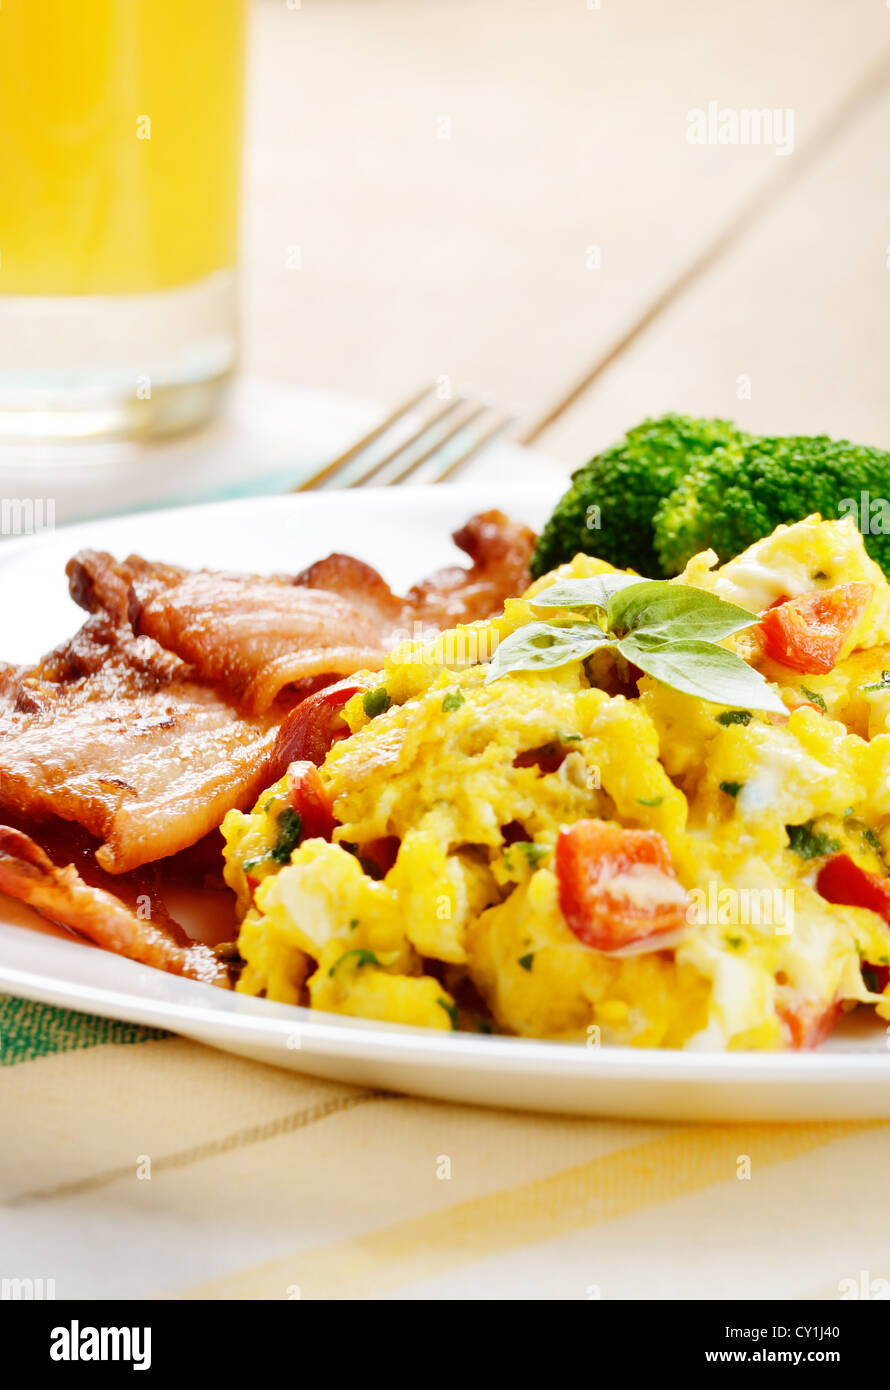 Omelet with vegetables, fried bacon and orange juice - Stock Image